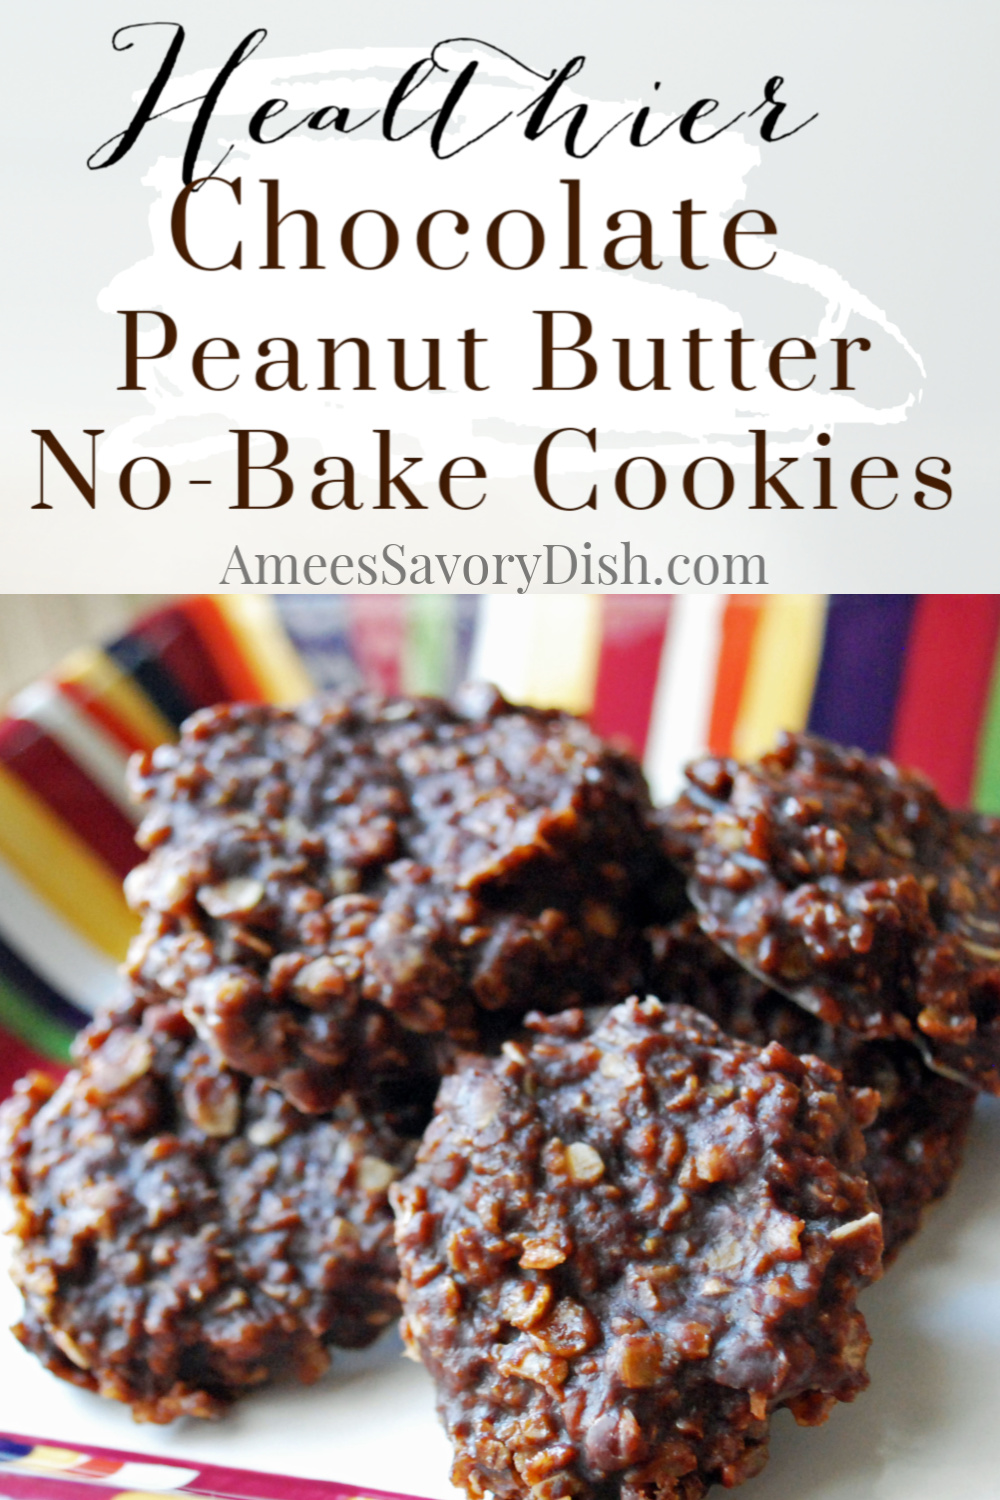 This healthier chocolate peanut butter no-bake cookies recipe is made with better ingredients, but still crazy delicious!! Betcha can't eat just one! via @Ameecooks